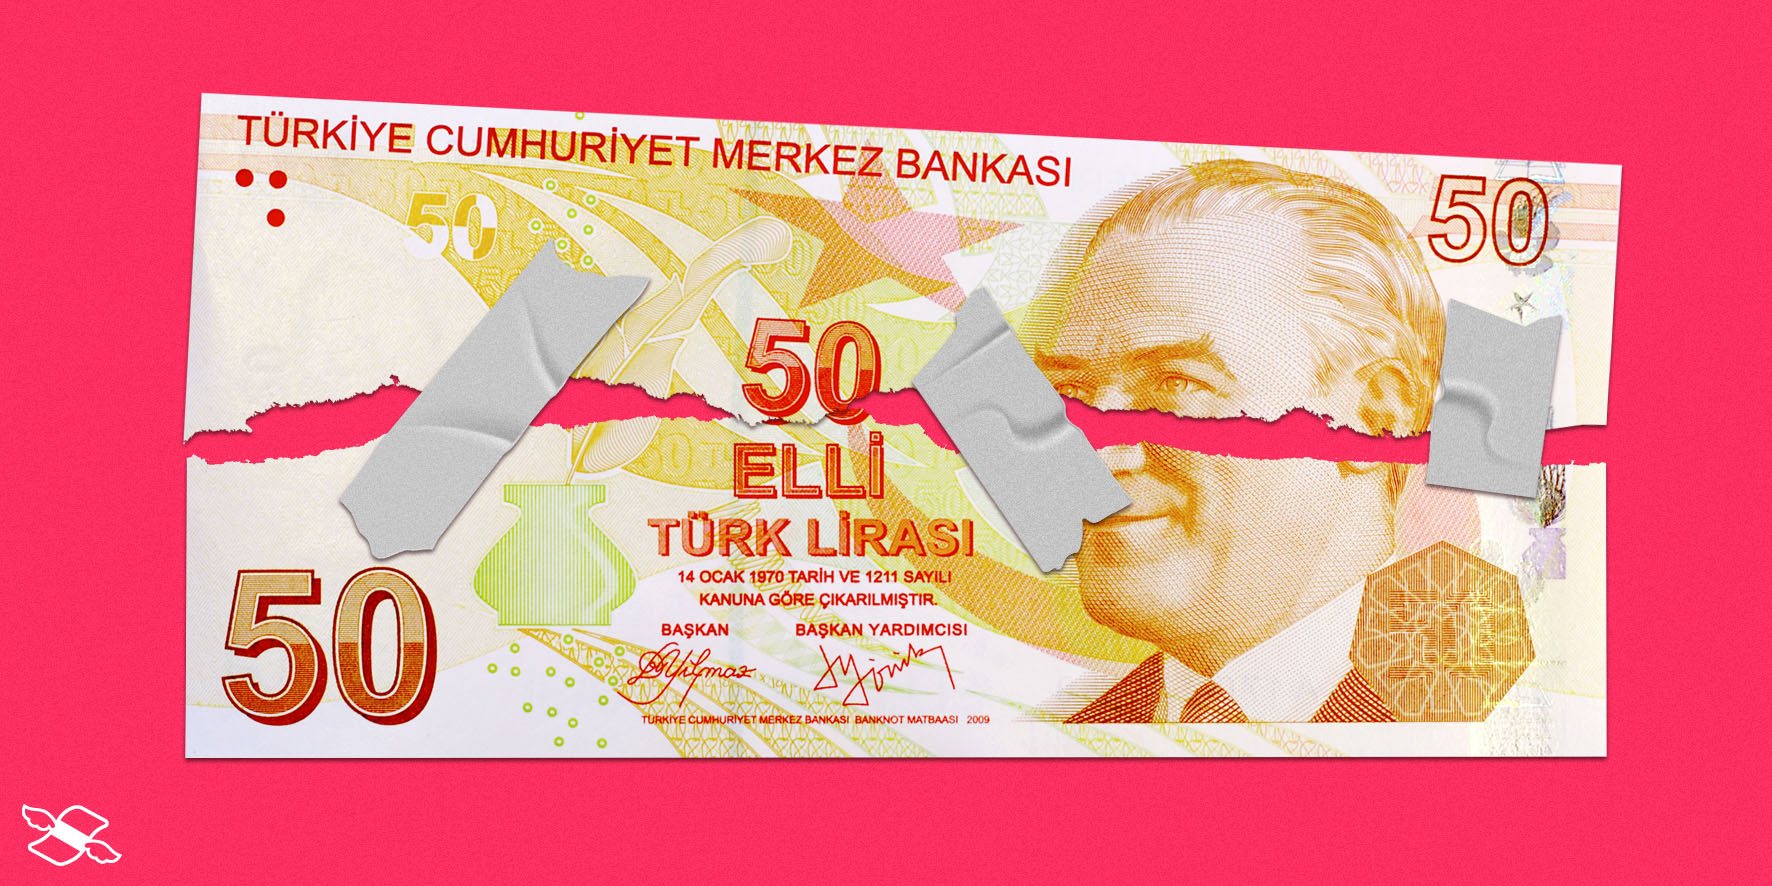 Turkish lira falls